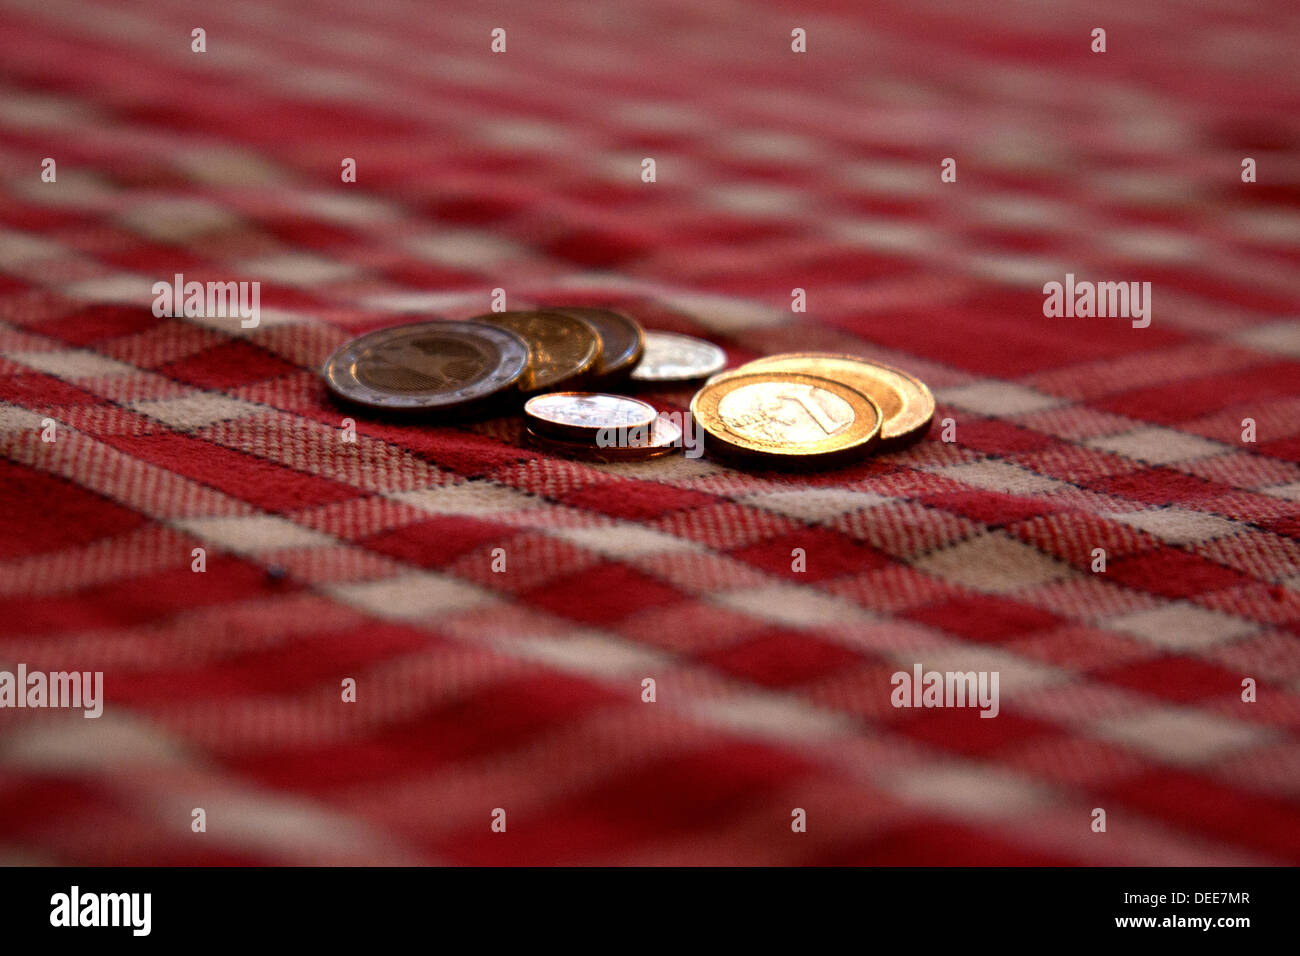 coins on a table - Stock Image